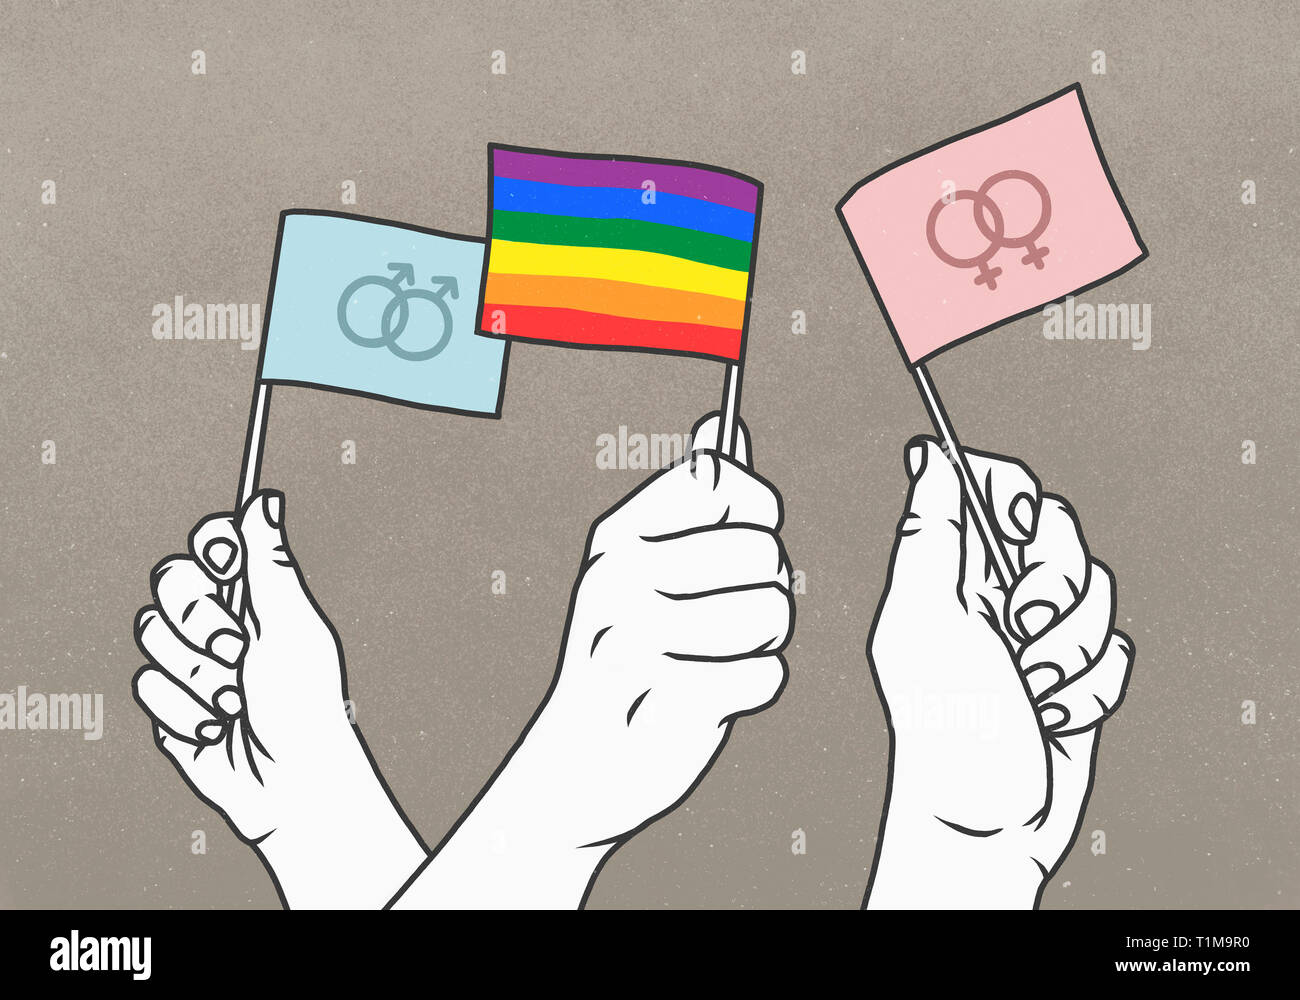 Opposing hands waving rainbow and gender flags - Stock Image